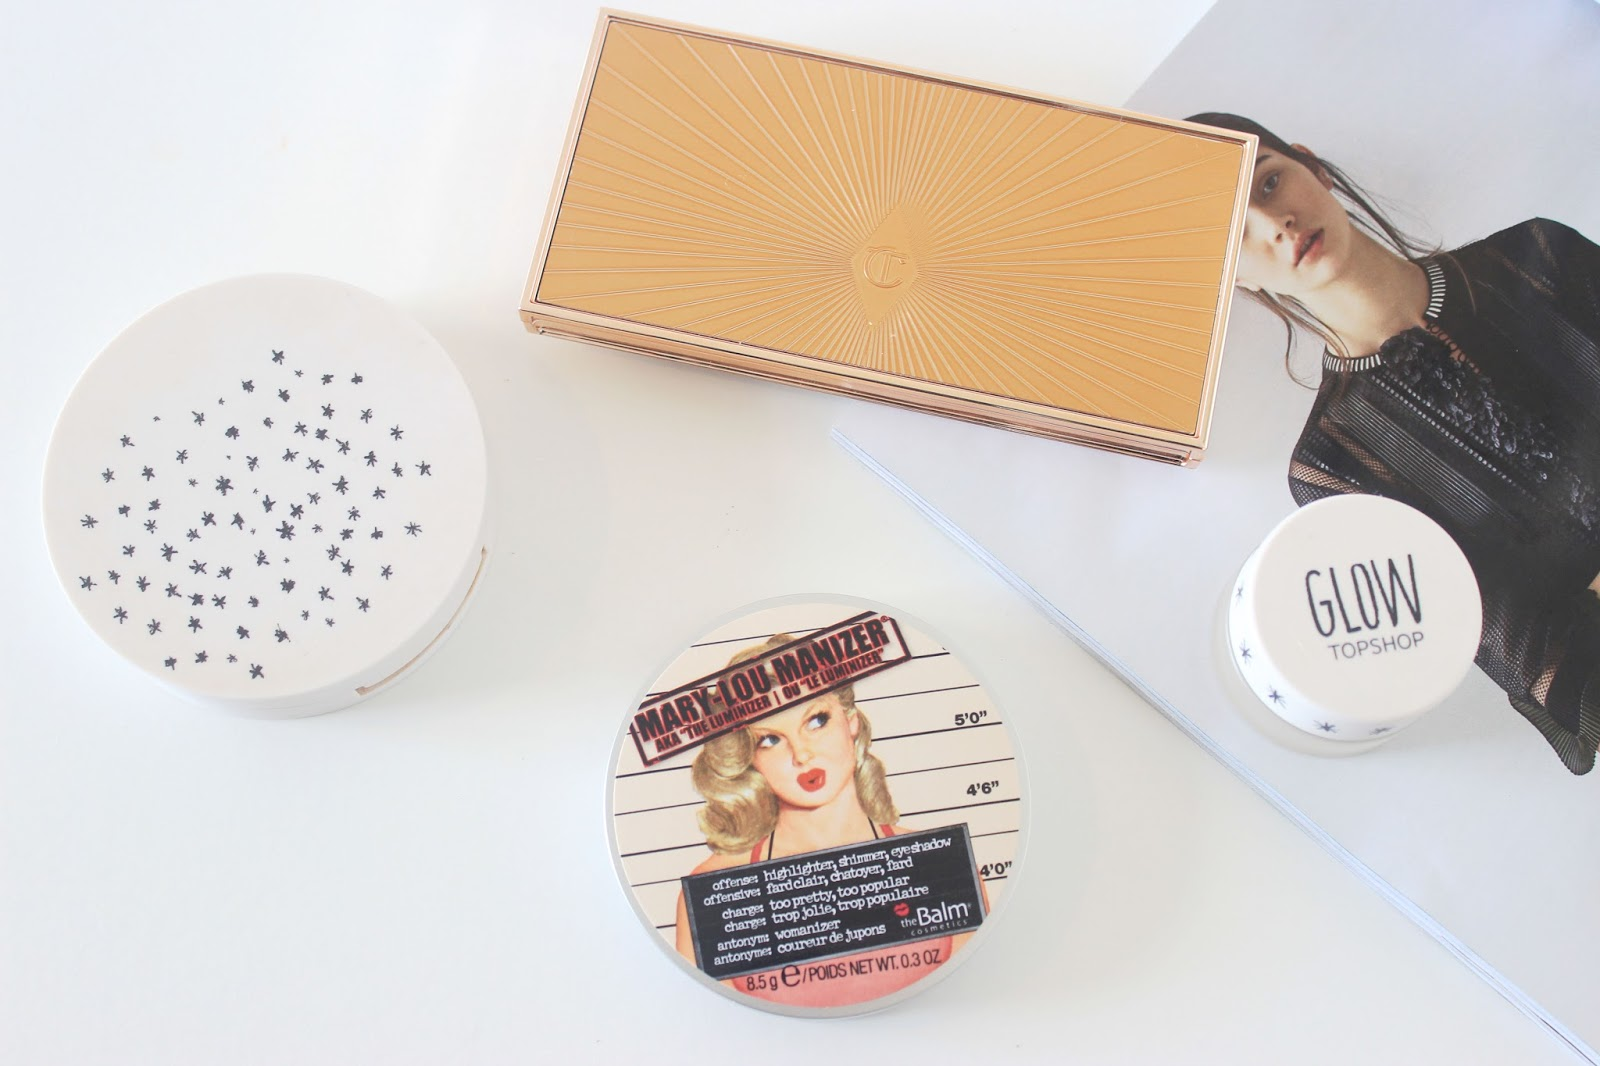 Charlotte Tilbury Bronze and Glow, Topshop Polish, Horzion, The Balm Mary Lou Manizer